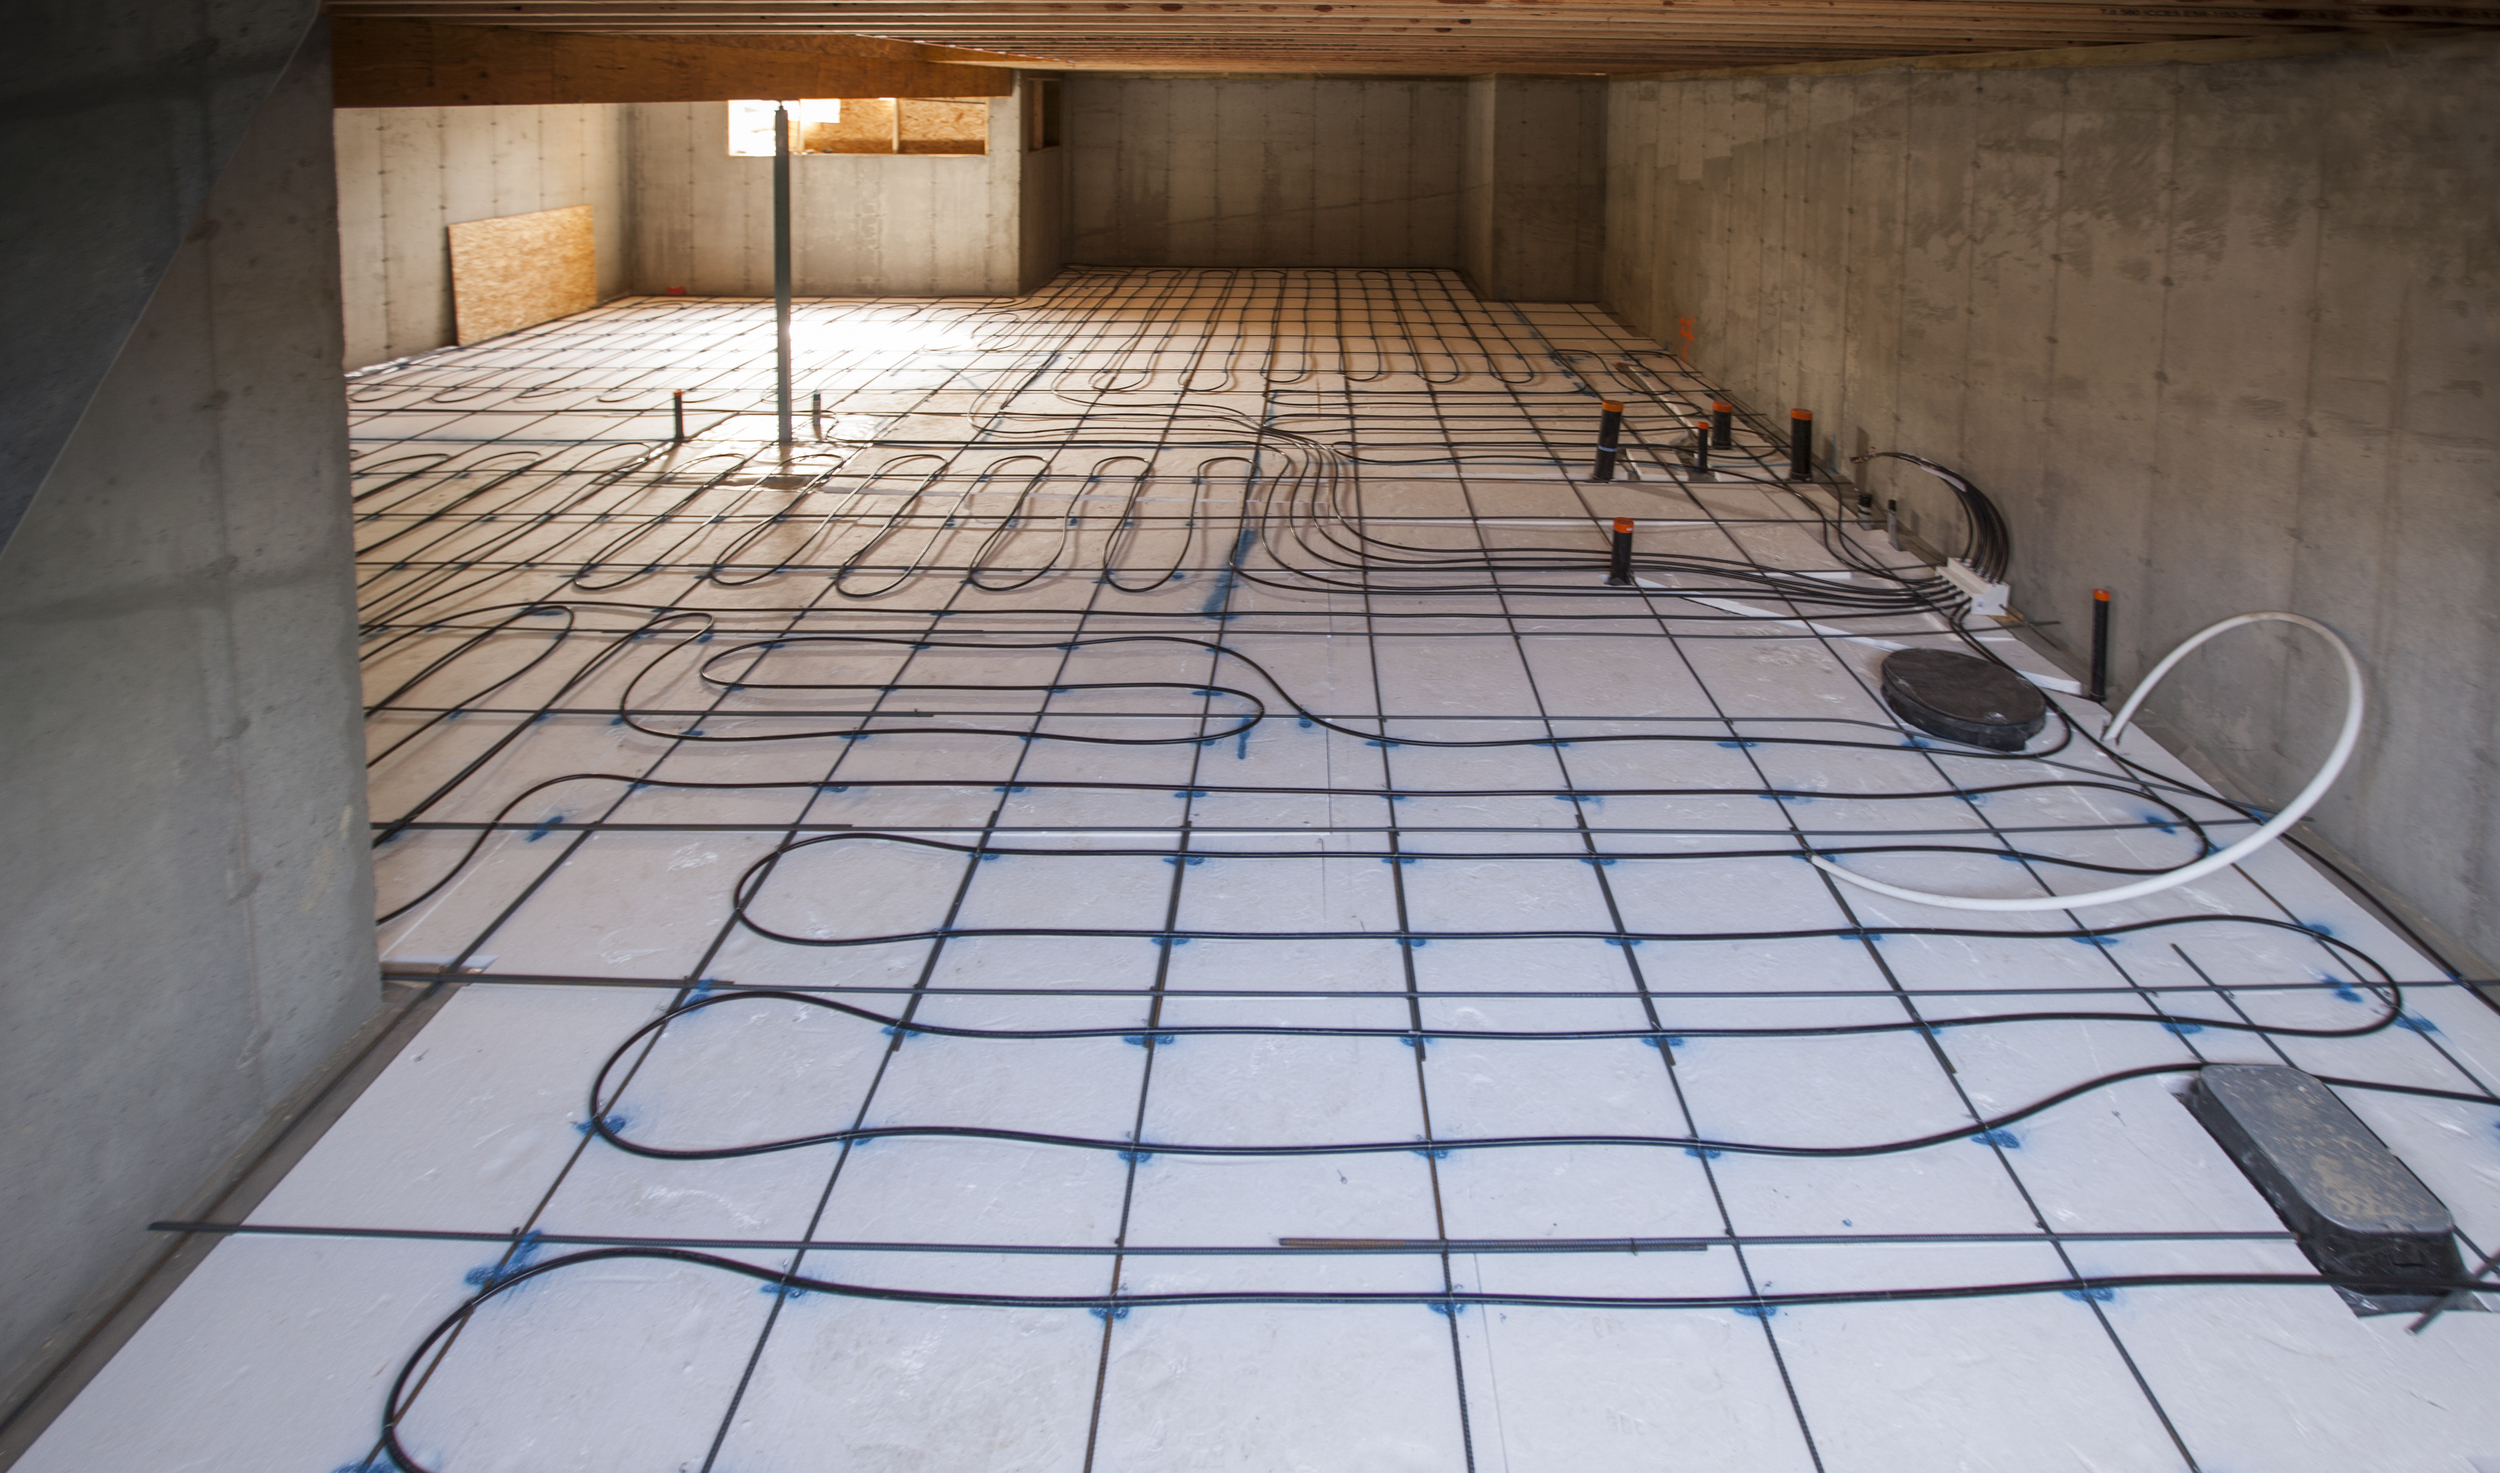 2016 05 10 - Basement  heated floor.JPG